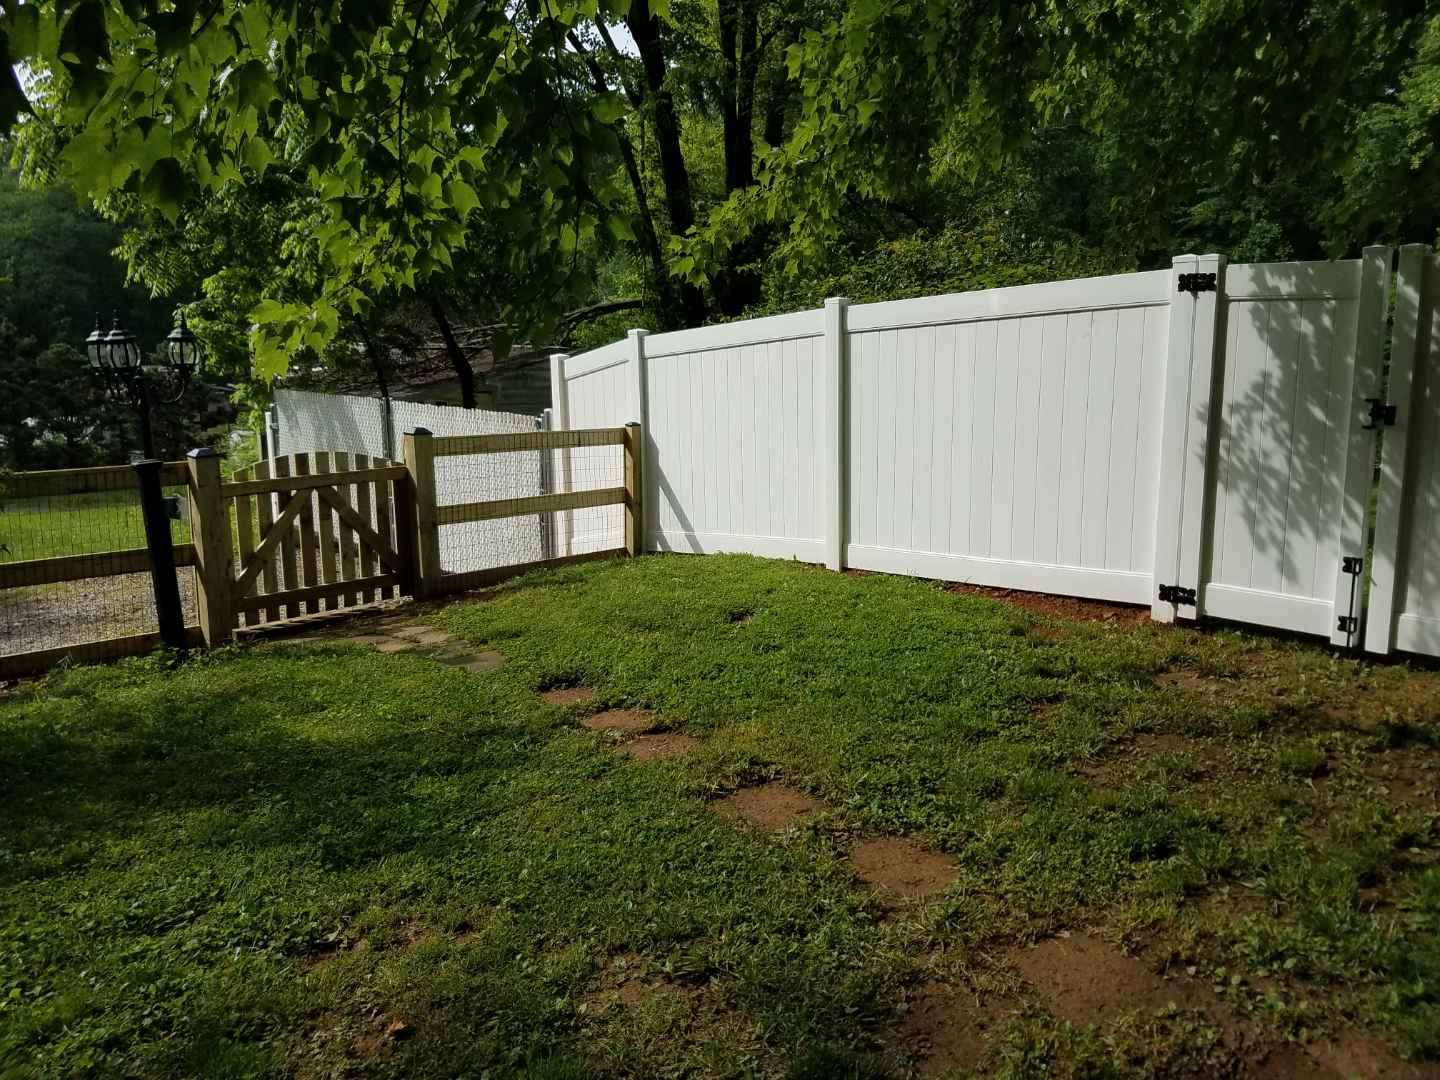 6ft White Vinyl PVC & 4ft Wood Paddock with Black Mesh Wire Fence